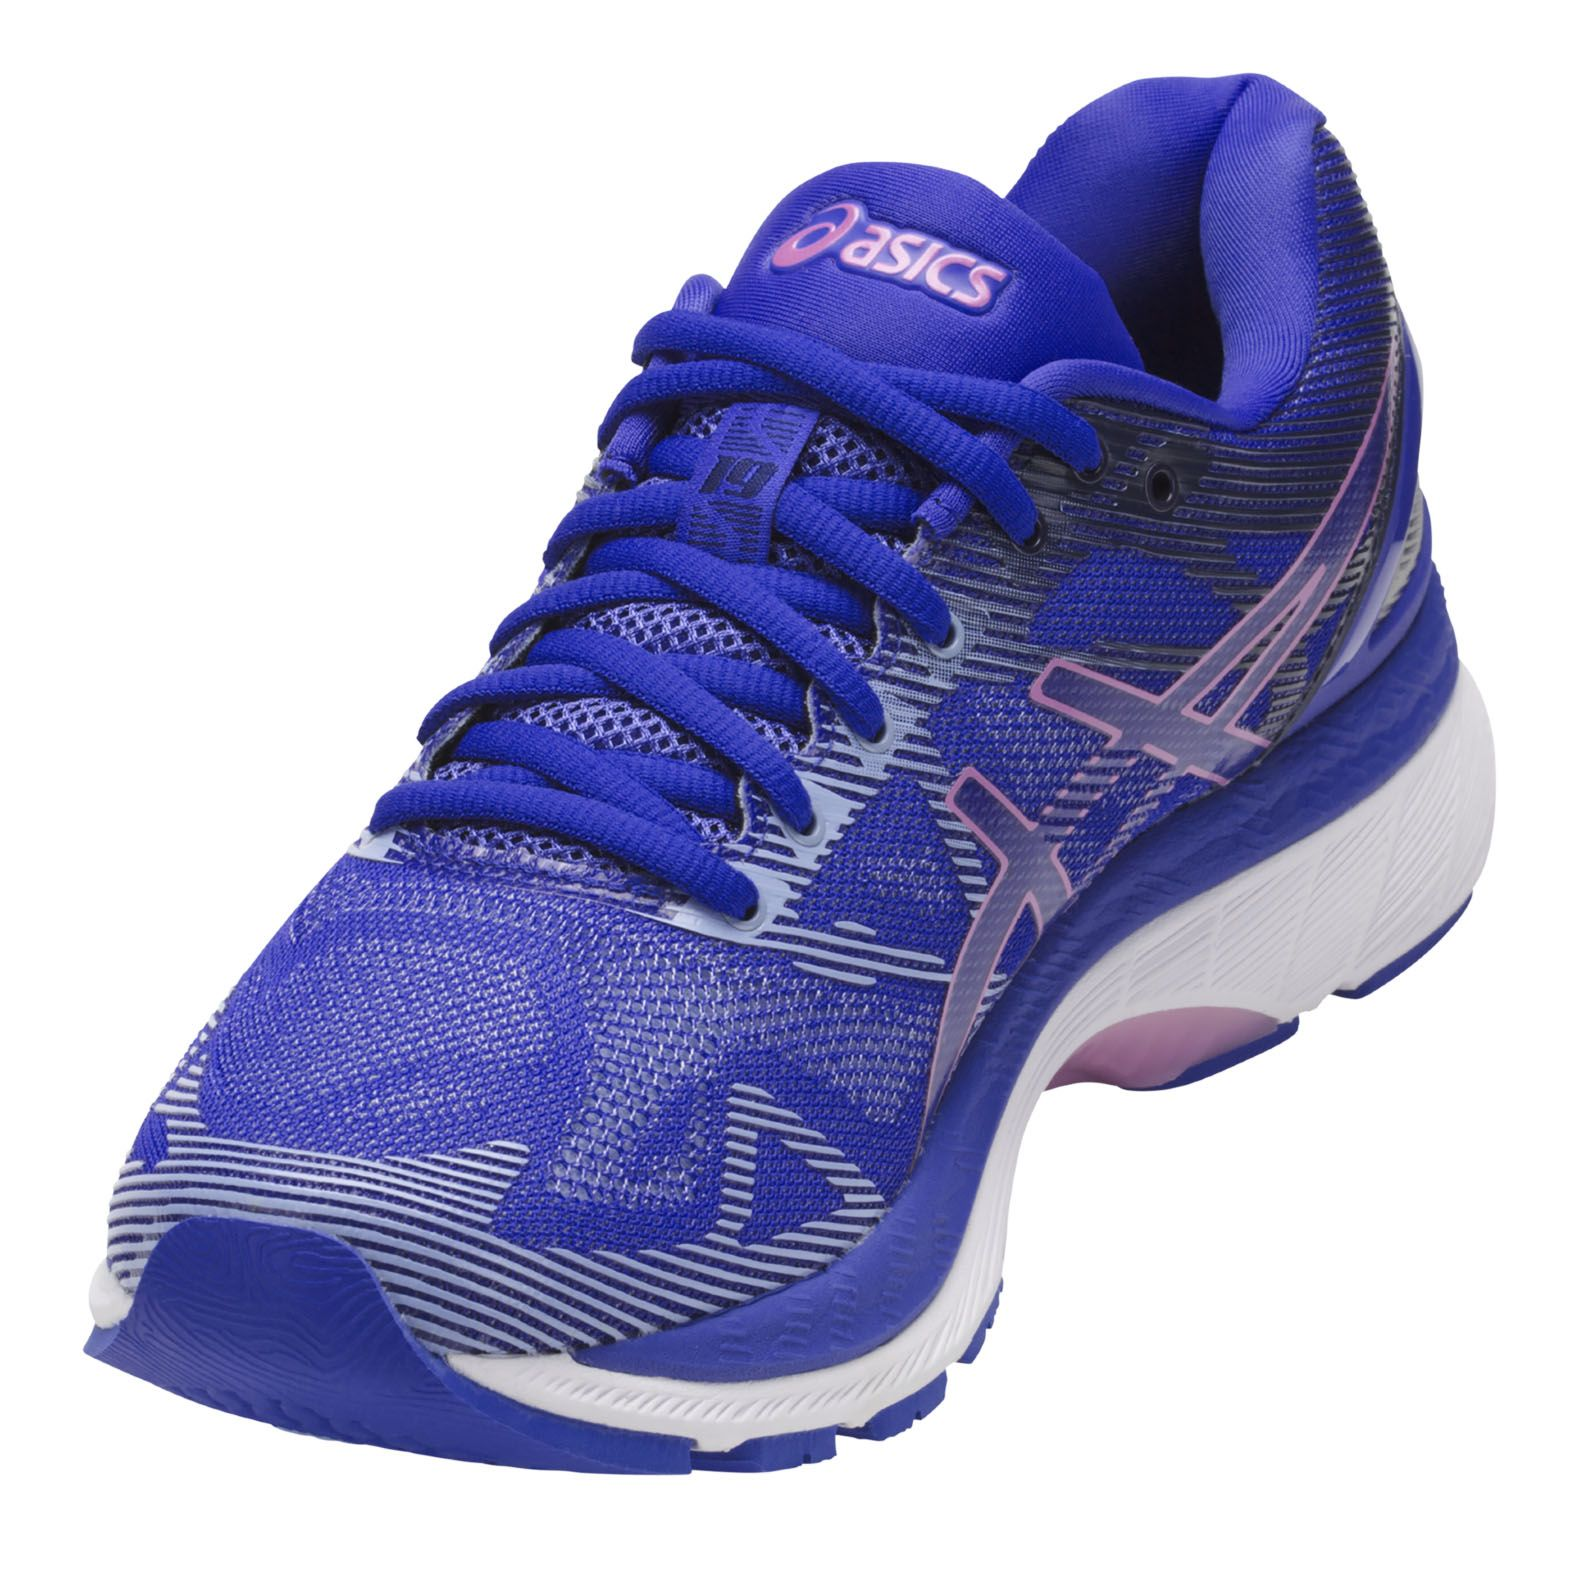 asics gel nimbus 19 ladies running shoes. Black Bedroom Furniture Sets. Home Design Ideas